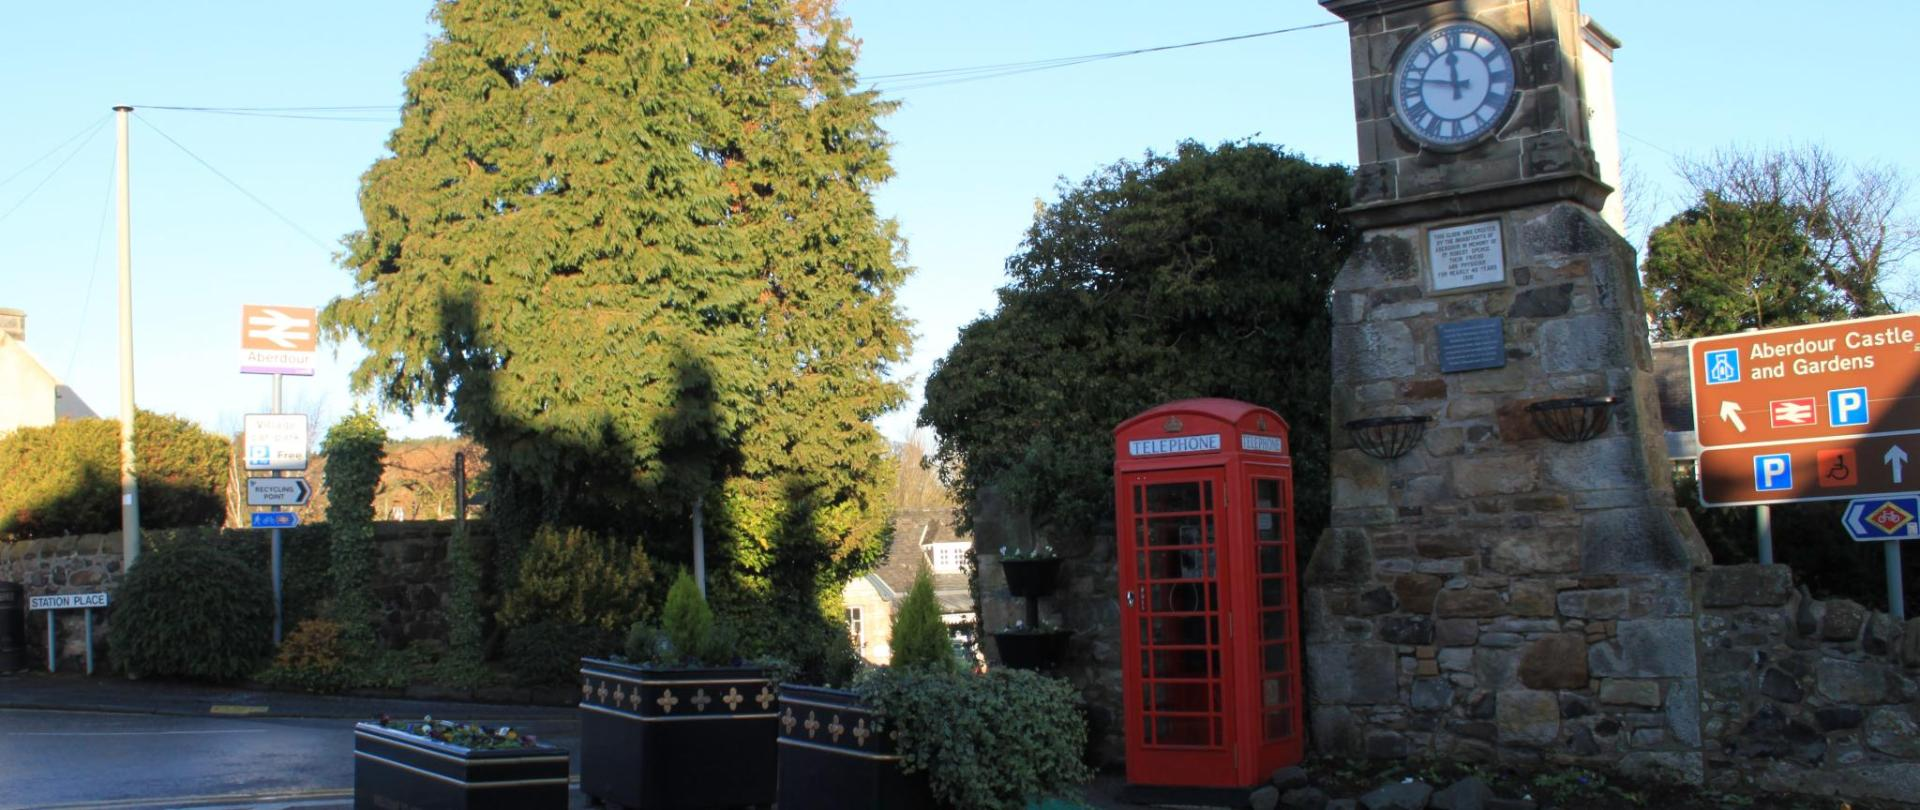 station phone box.jpg